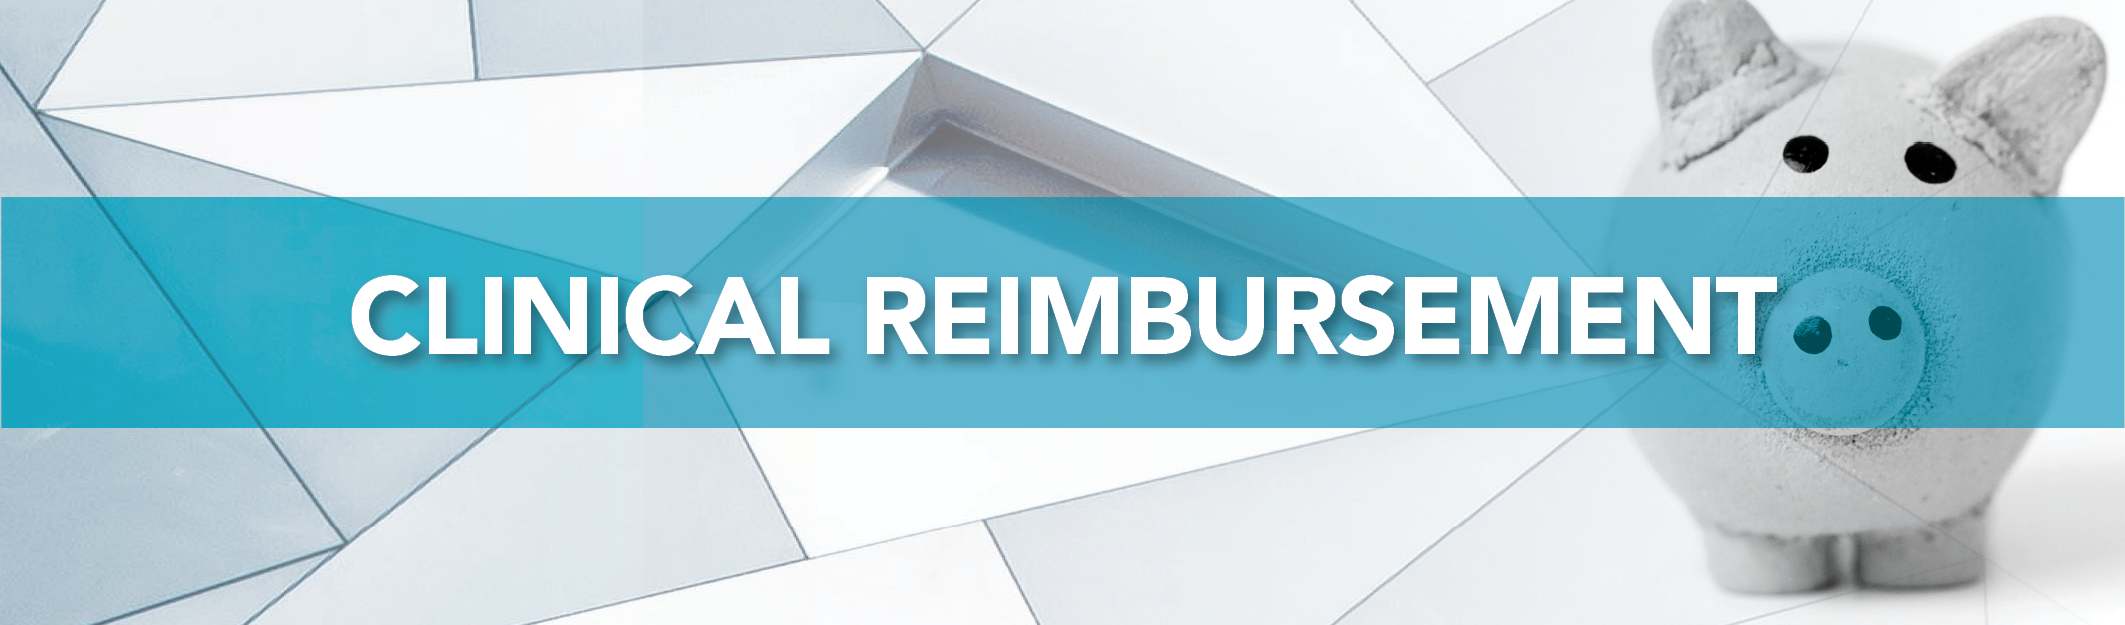 Clinical Reimbursement Header_112320